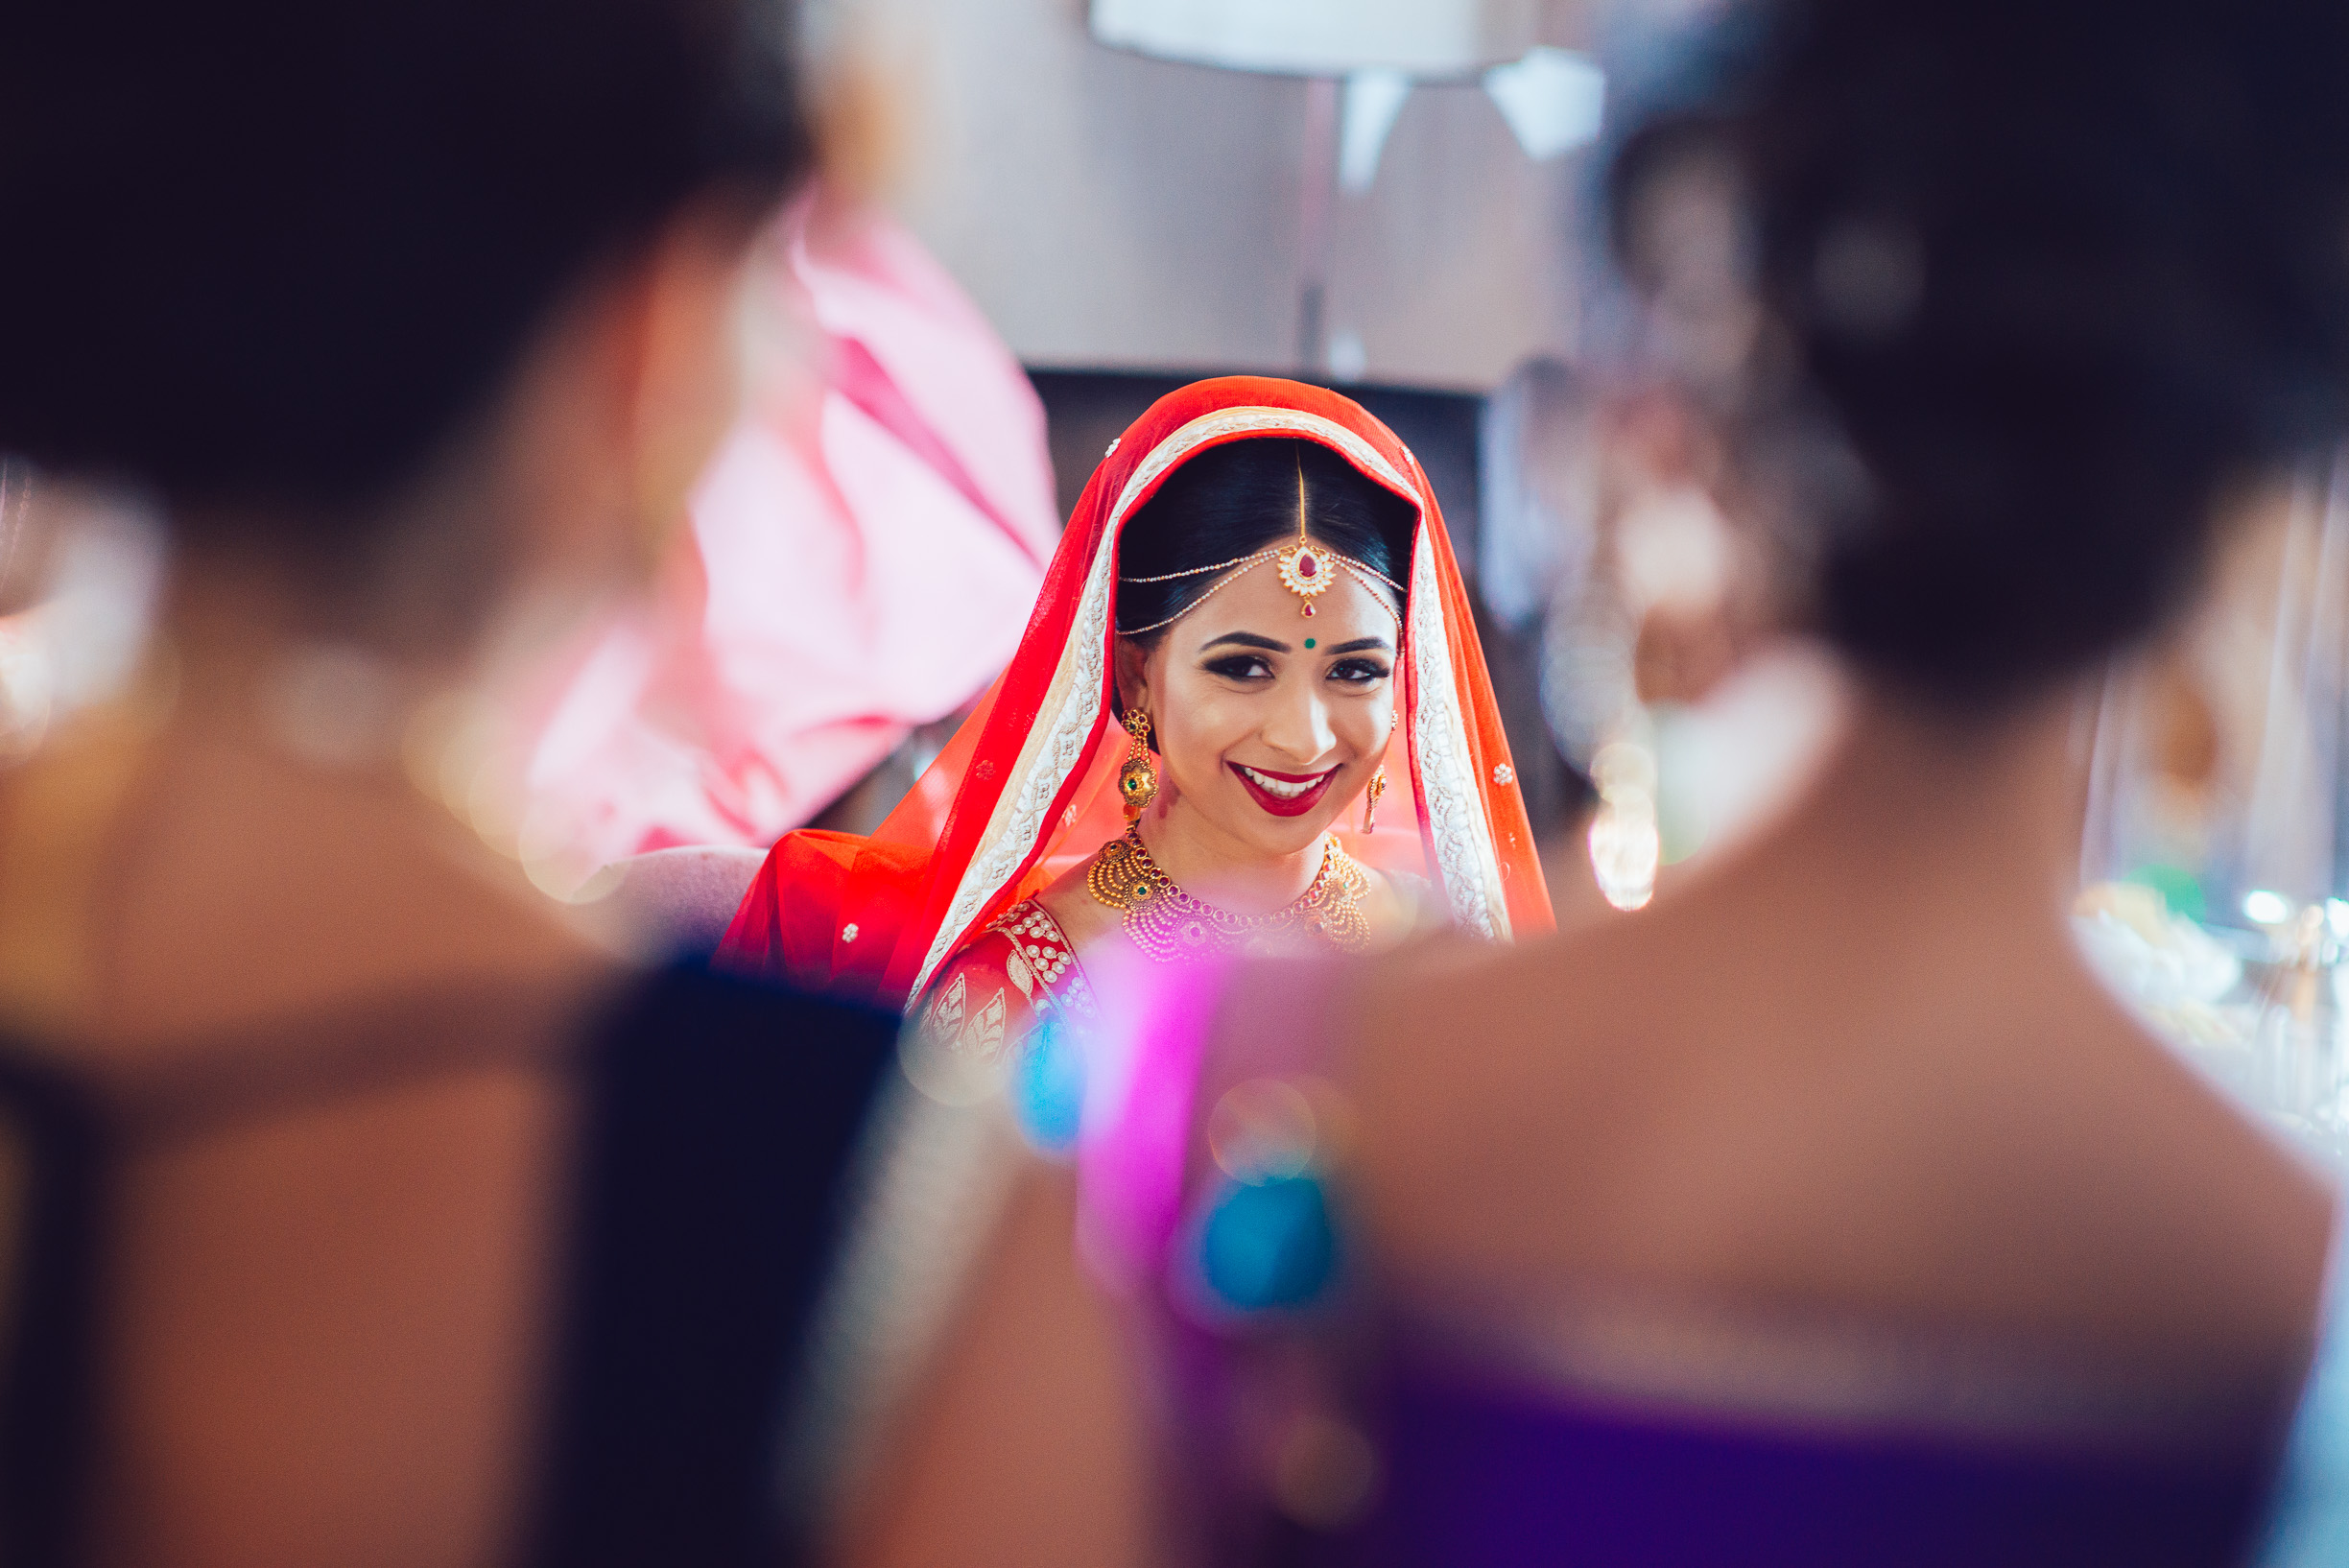 amit&ceema_eden_moments_wedding_photography-3